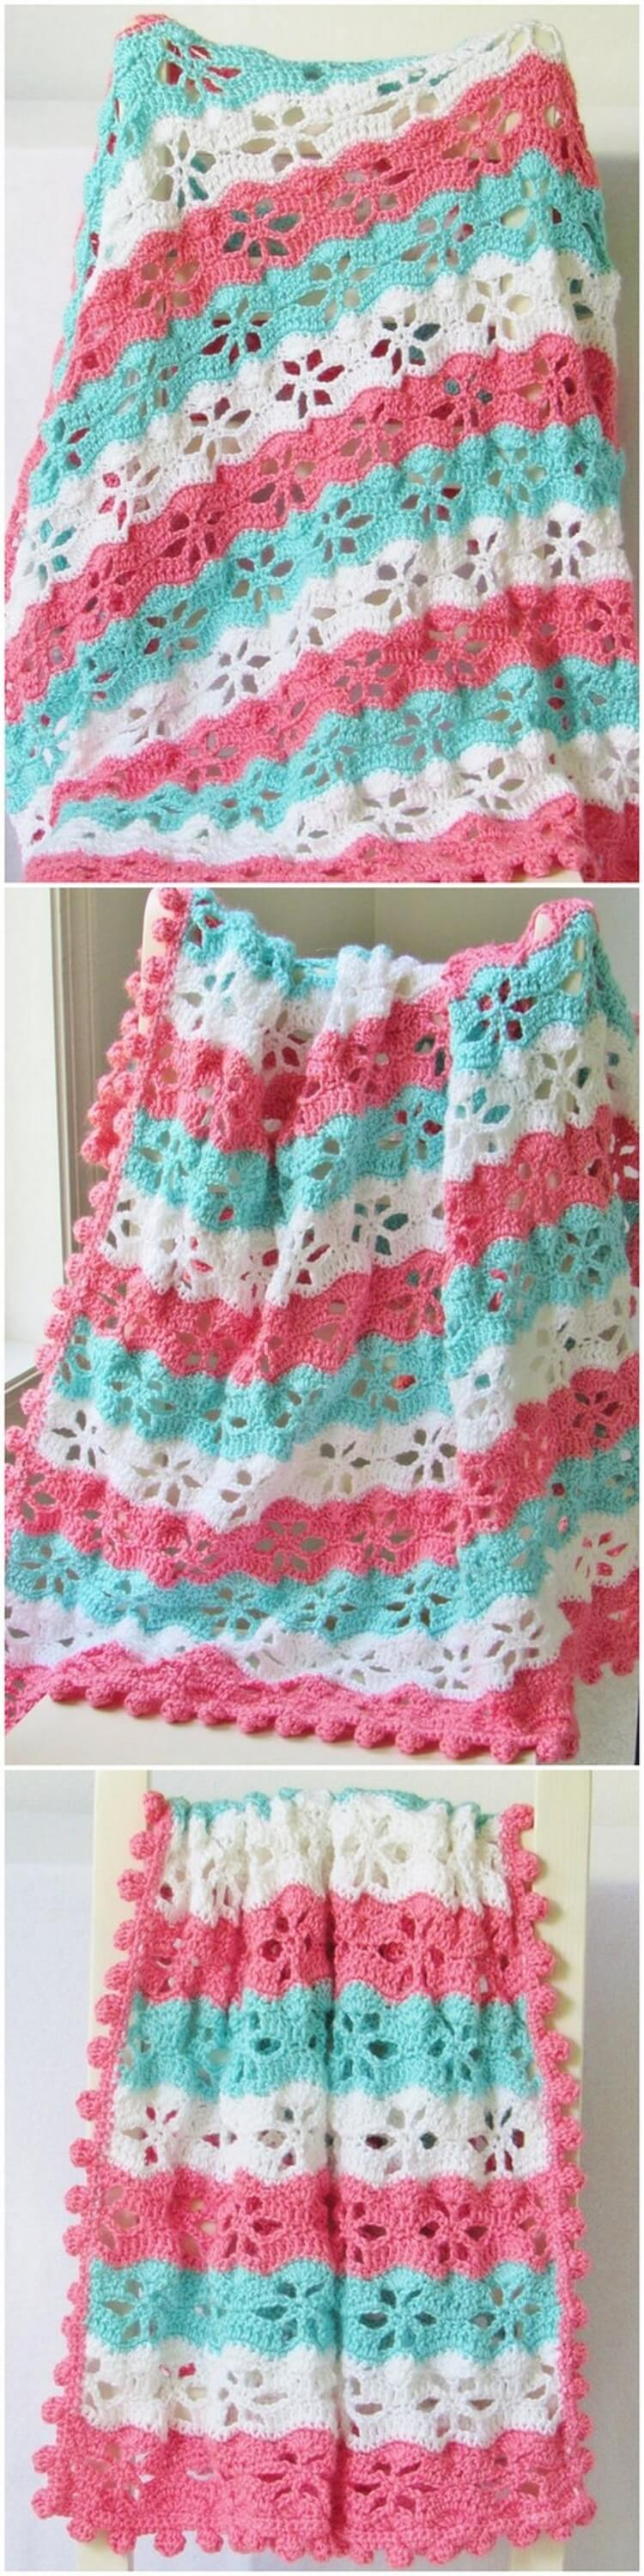 Crochet Blanket Pattern (41)